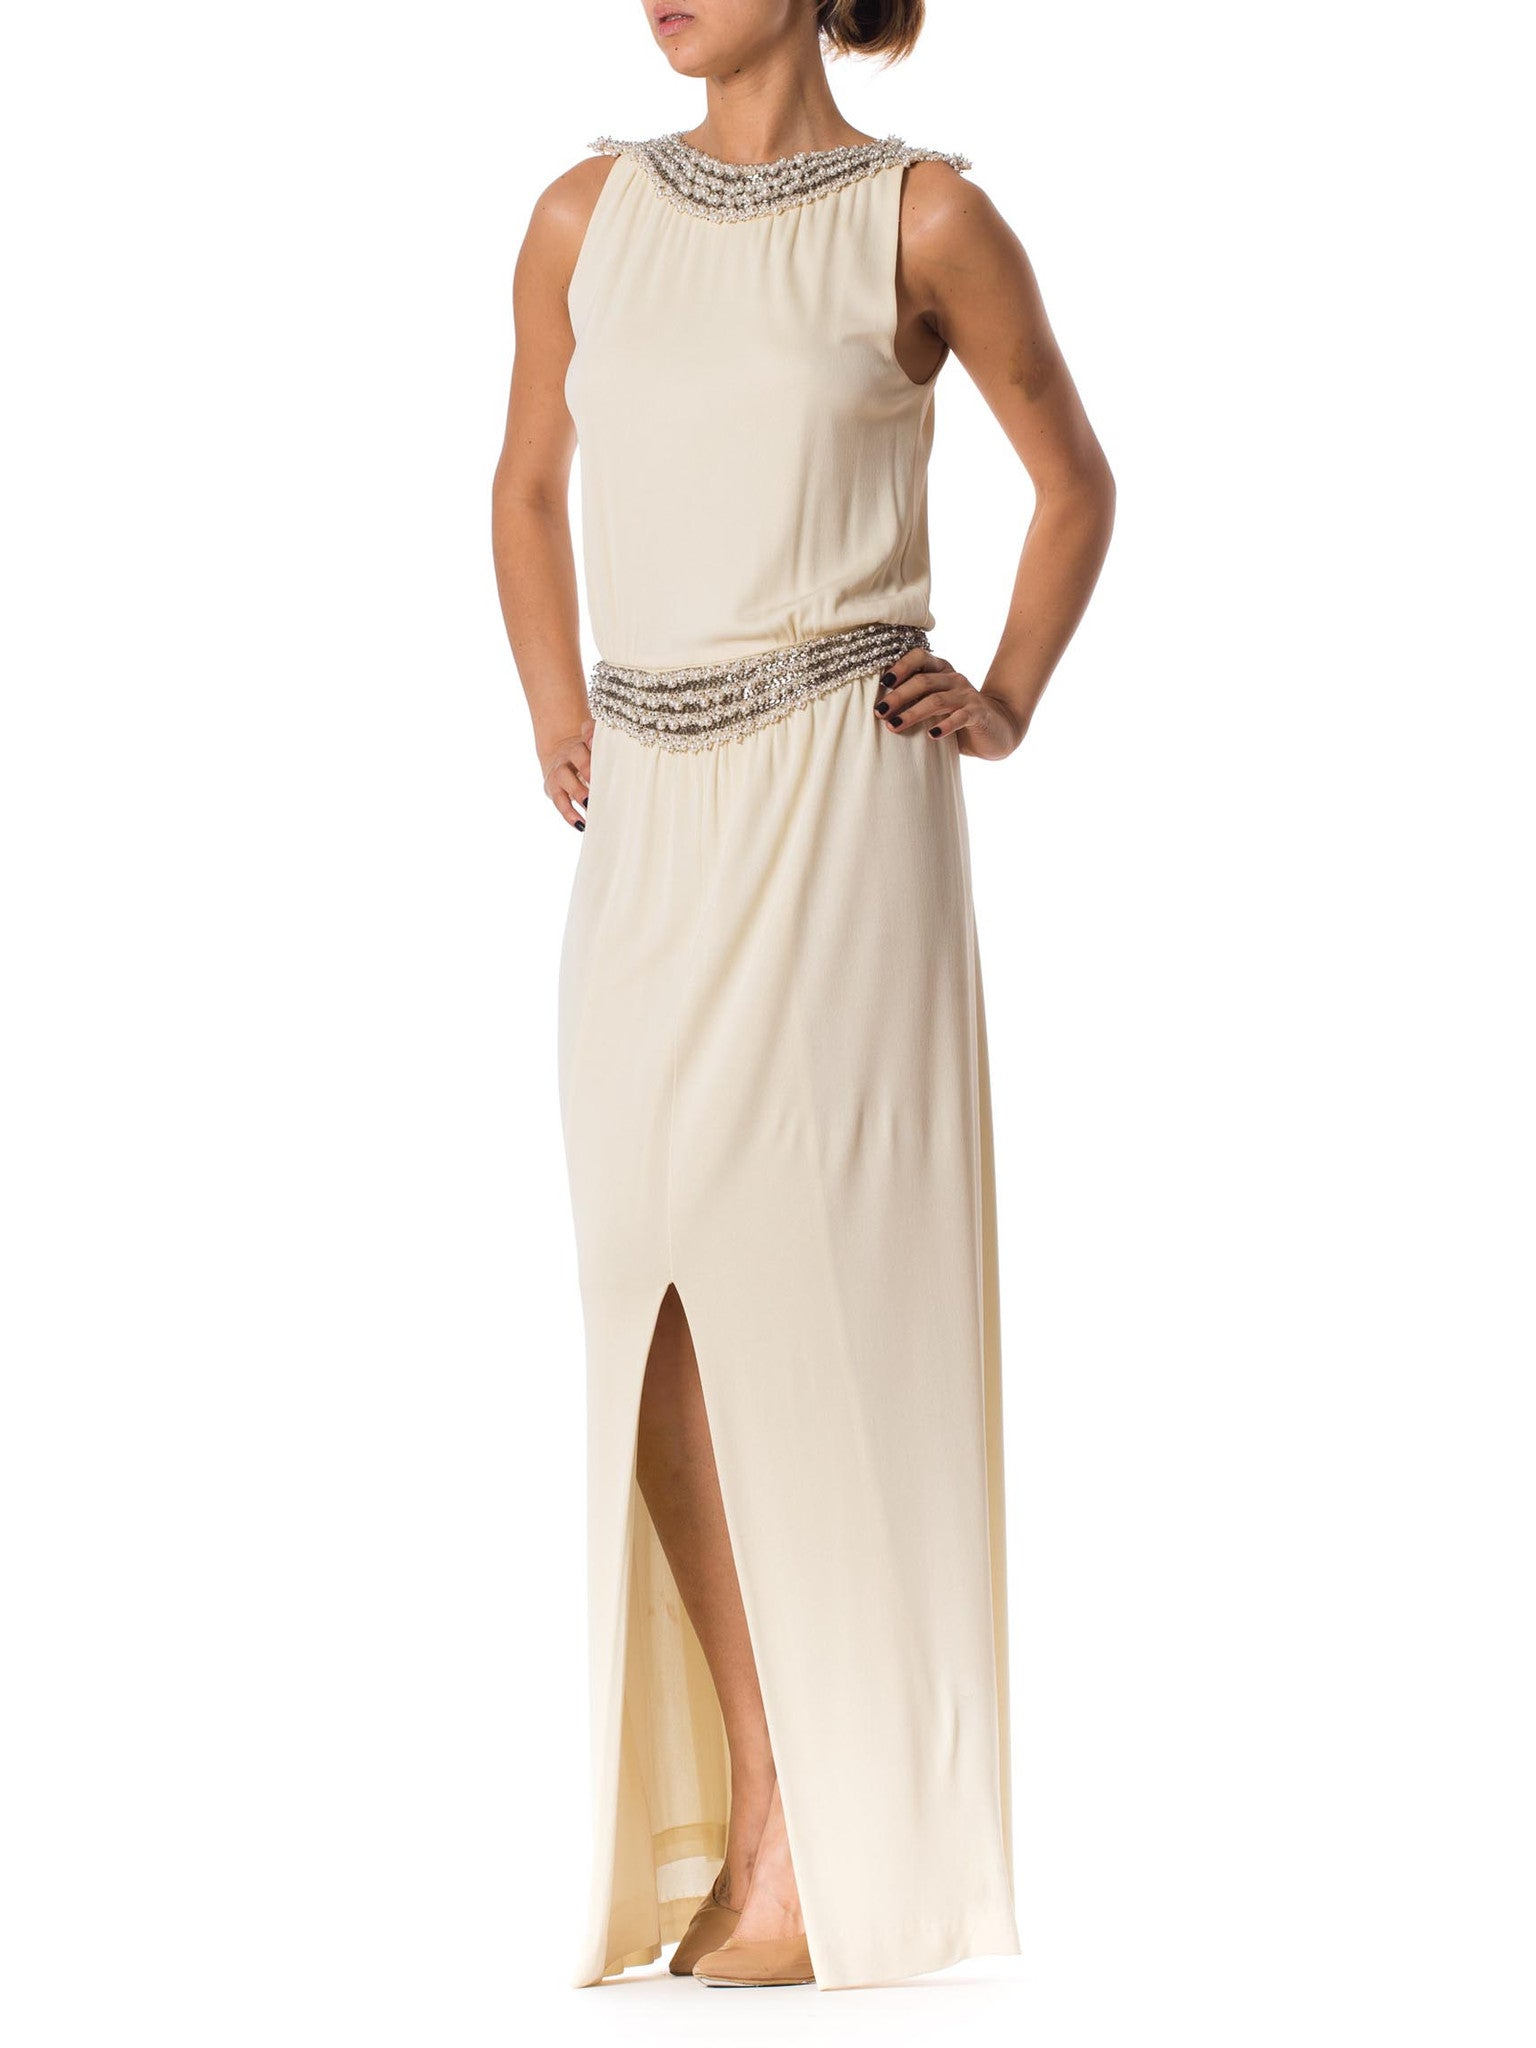 1970S Ivory Silk Jersey Gown With Crystal & Pearl Beading